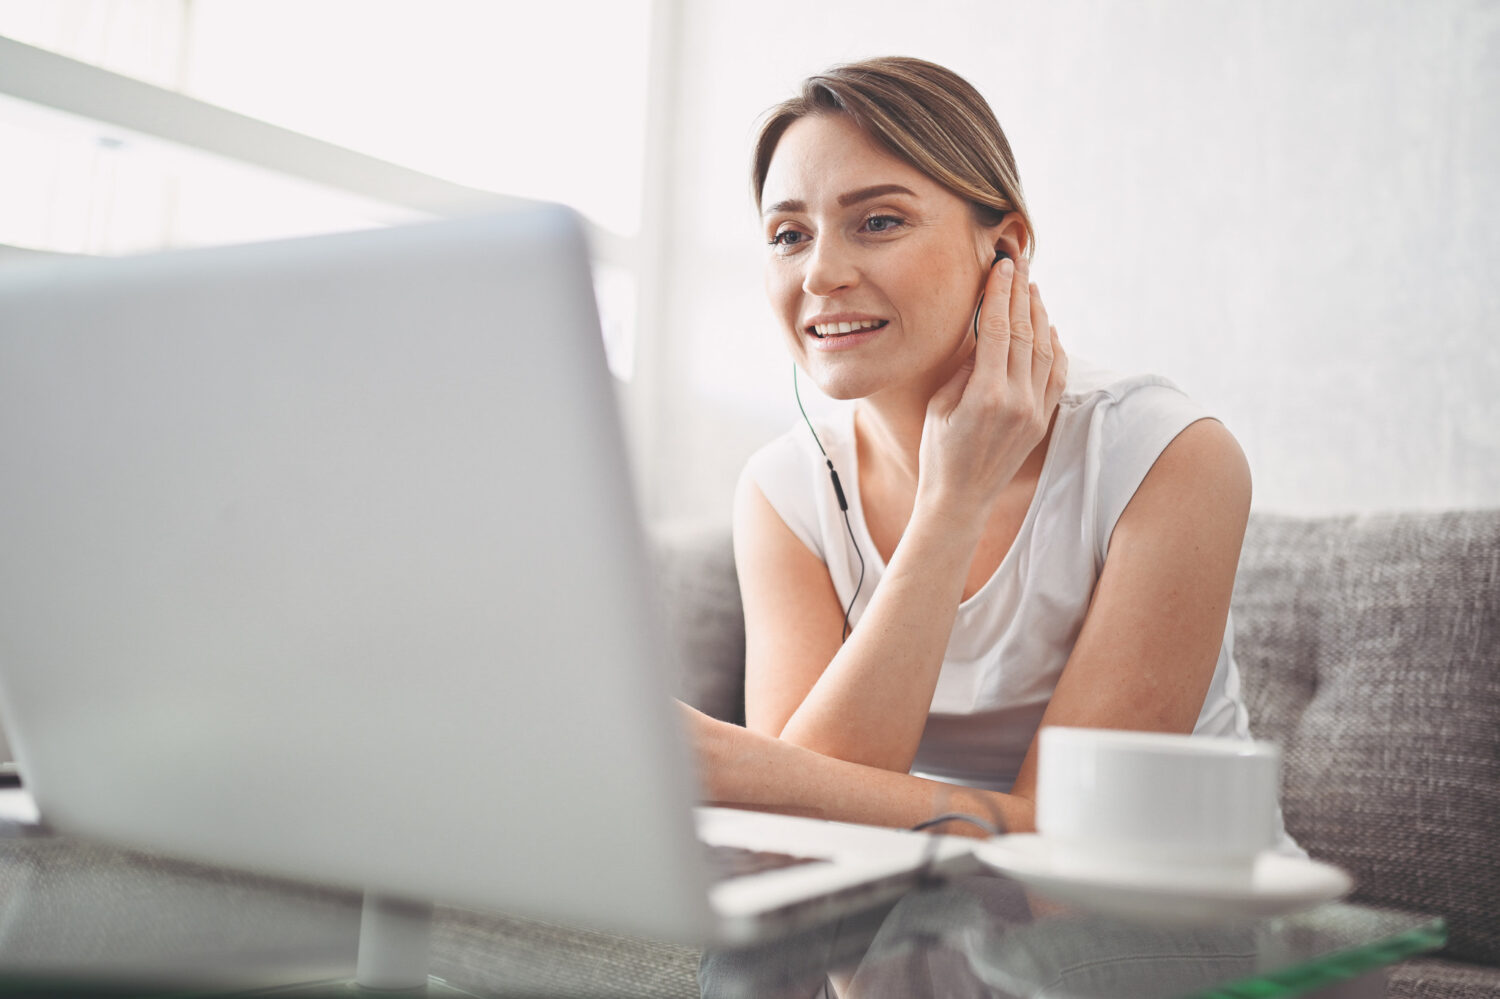 Image description: Person watching virtual townhall on her laptop at home.